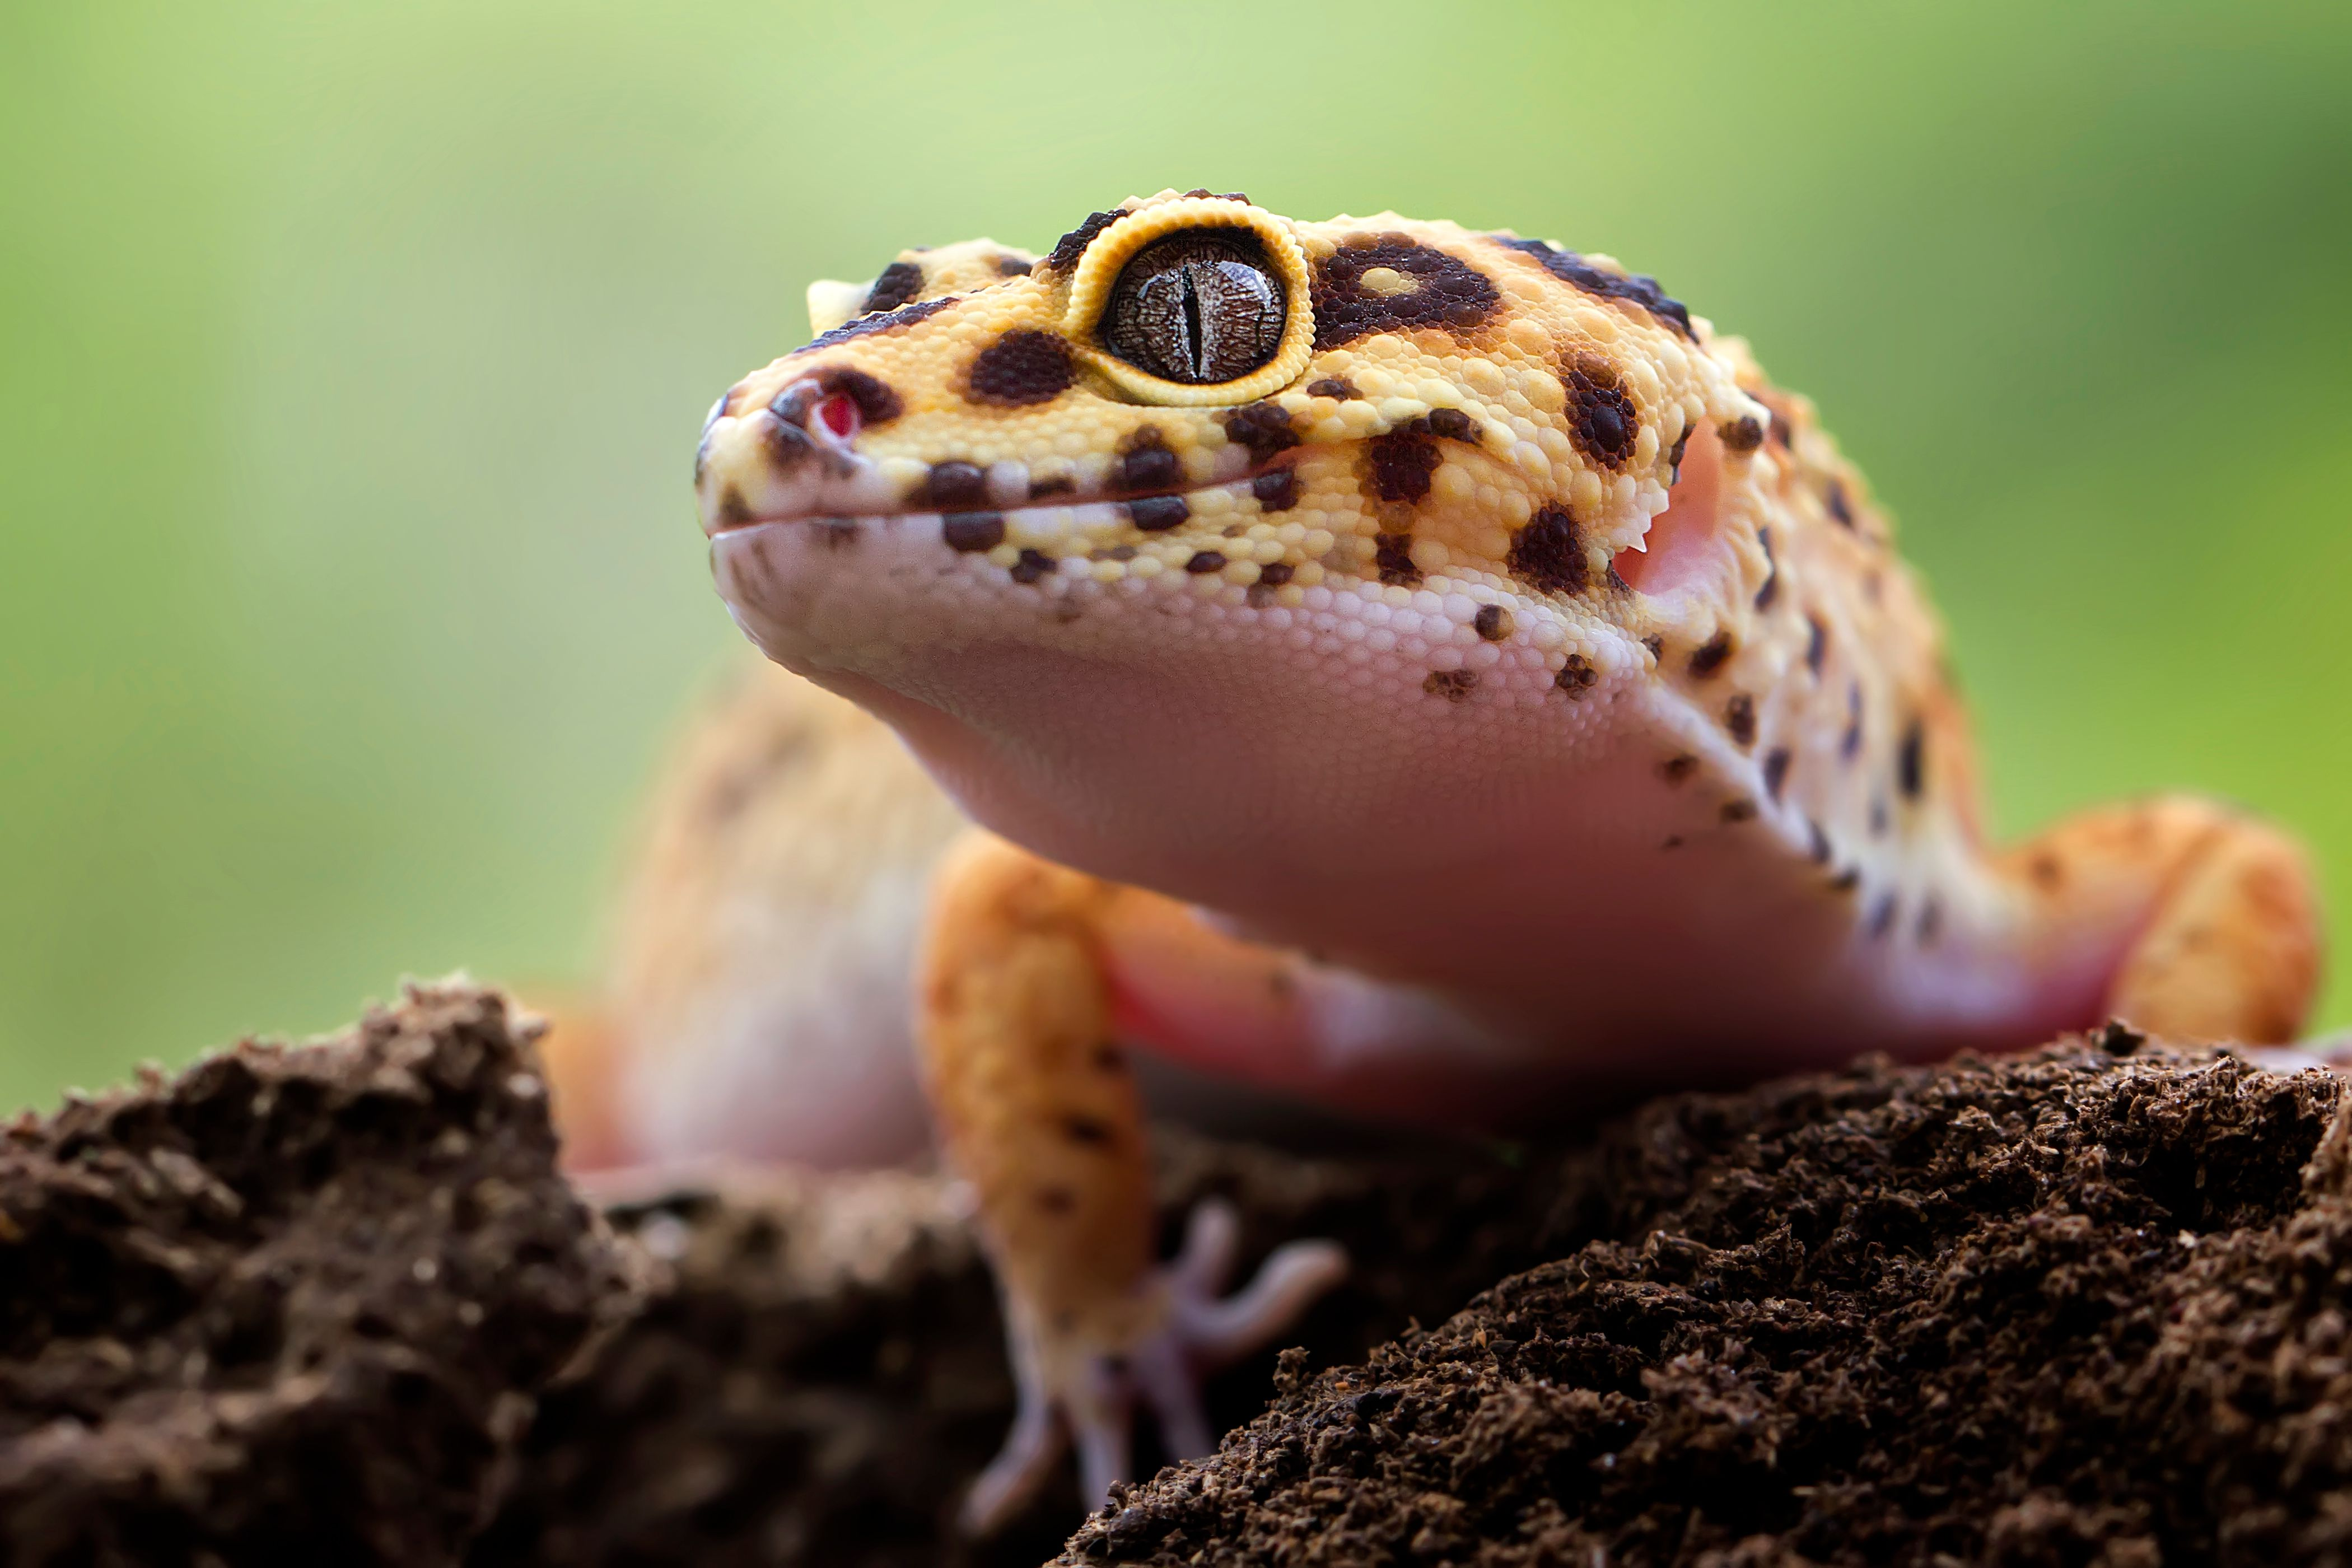 Close-up of a yellow and black spotted lizard